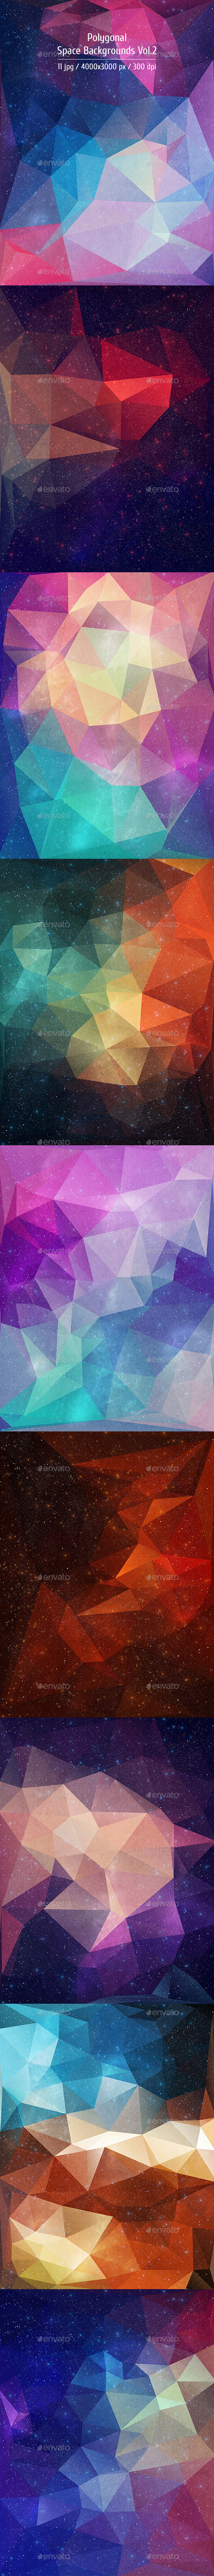 GraphicRiver Polygonal Space Backgrounds Vol.2 10918101